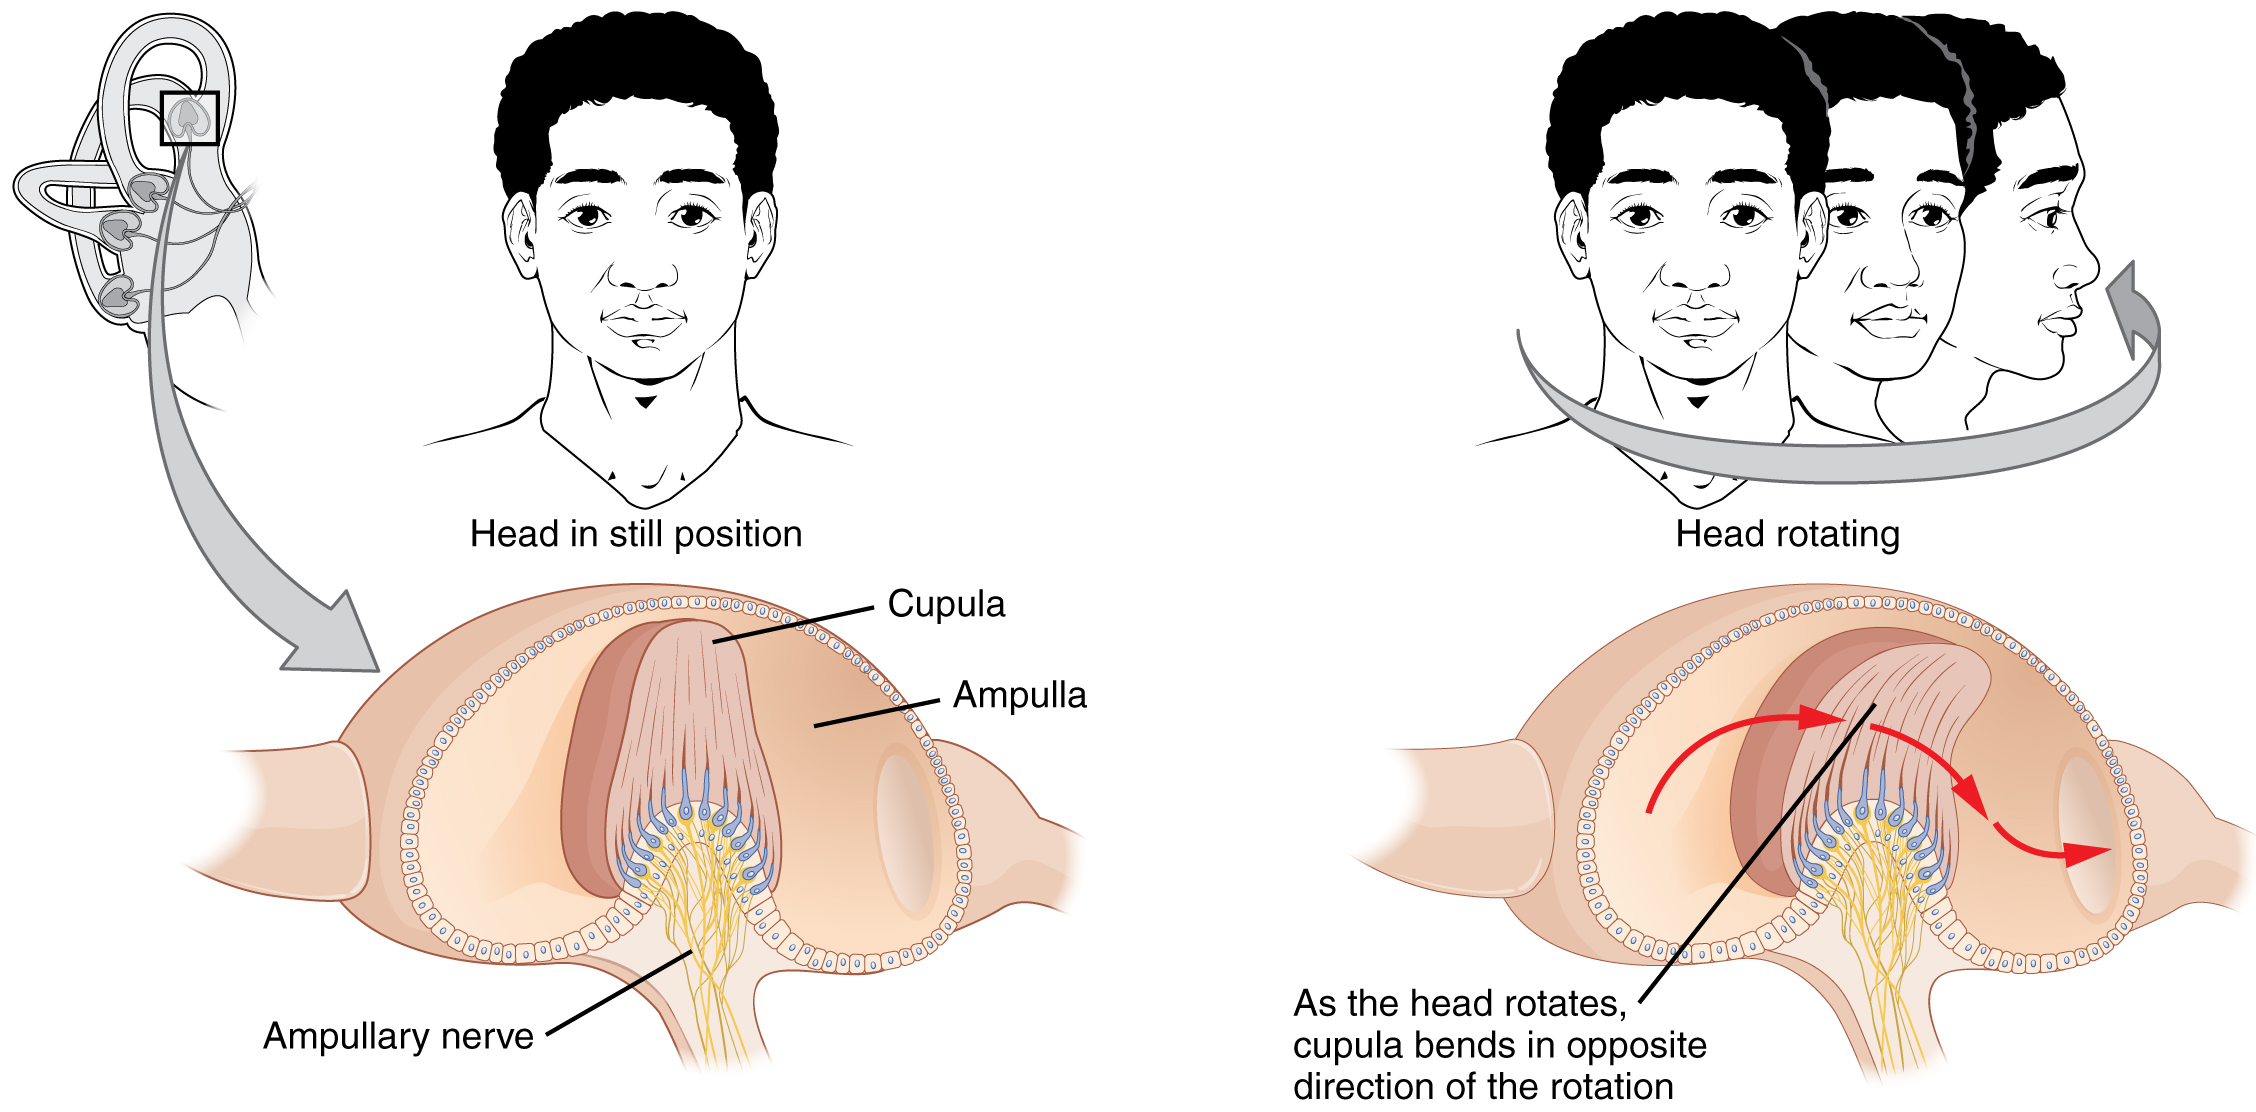 The left panel of this image shows a person's head in a still position. Underneath this, the ampullary nerve is shown. The right panel shows a person rotating his head, and the below that, the direction of movement of the cupula is shown.